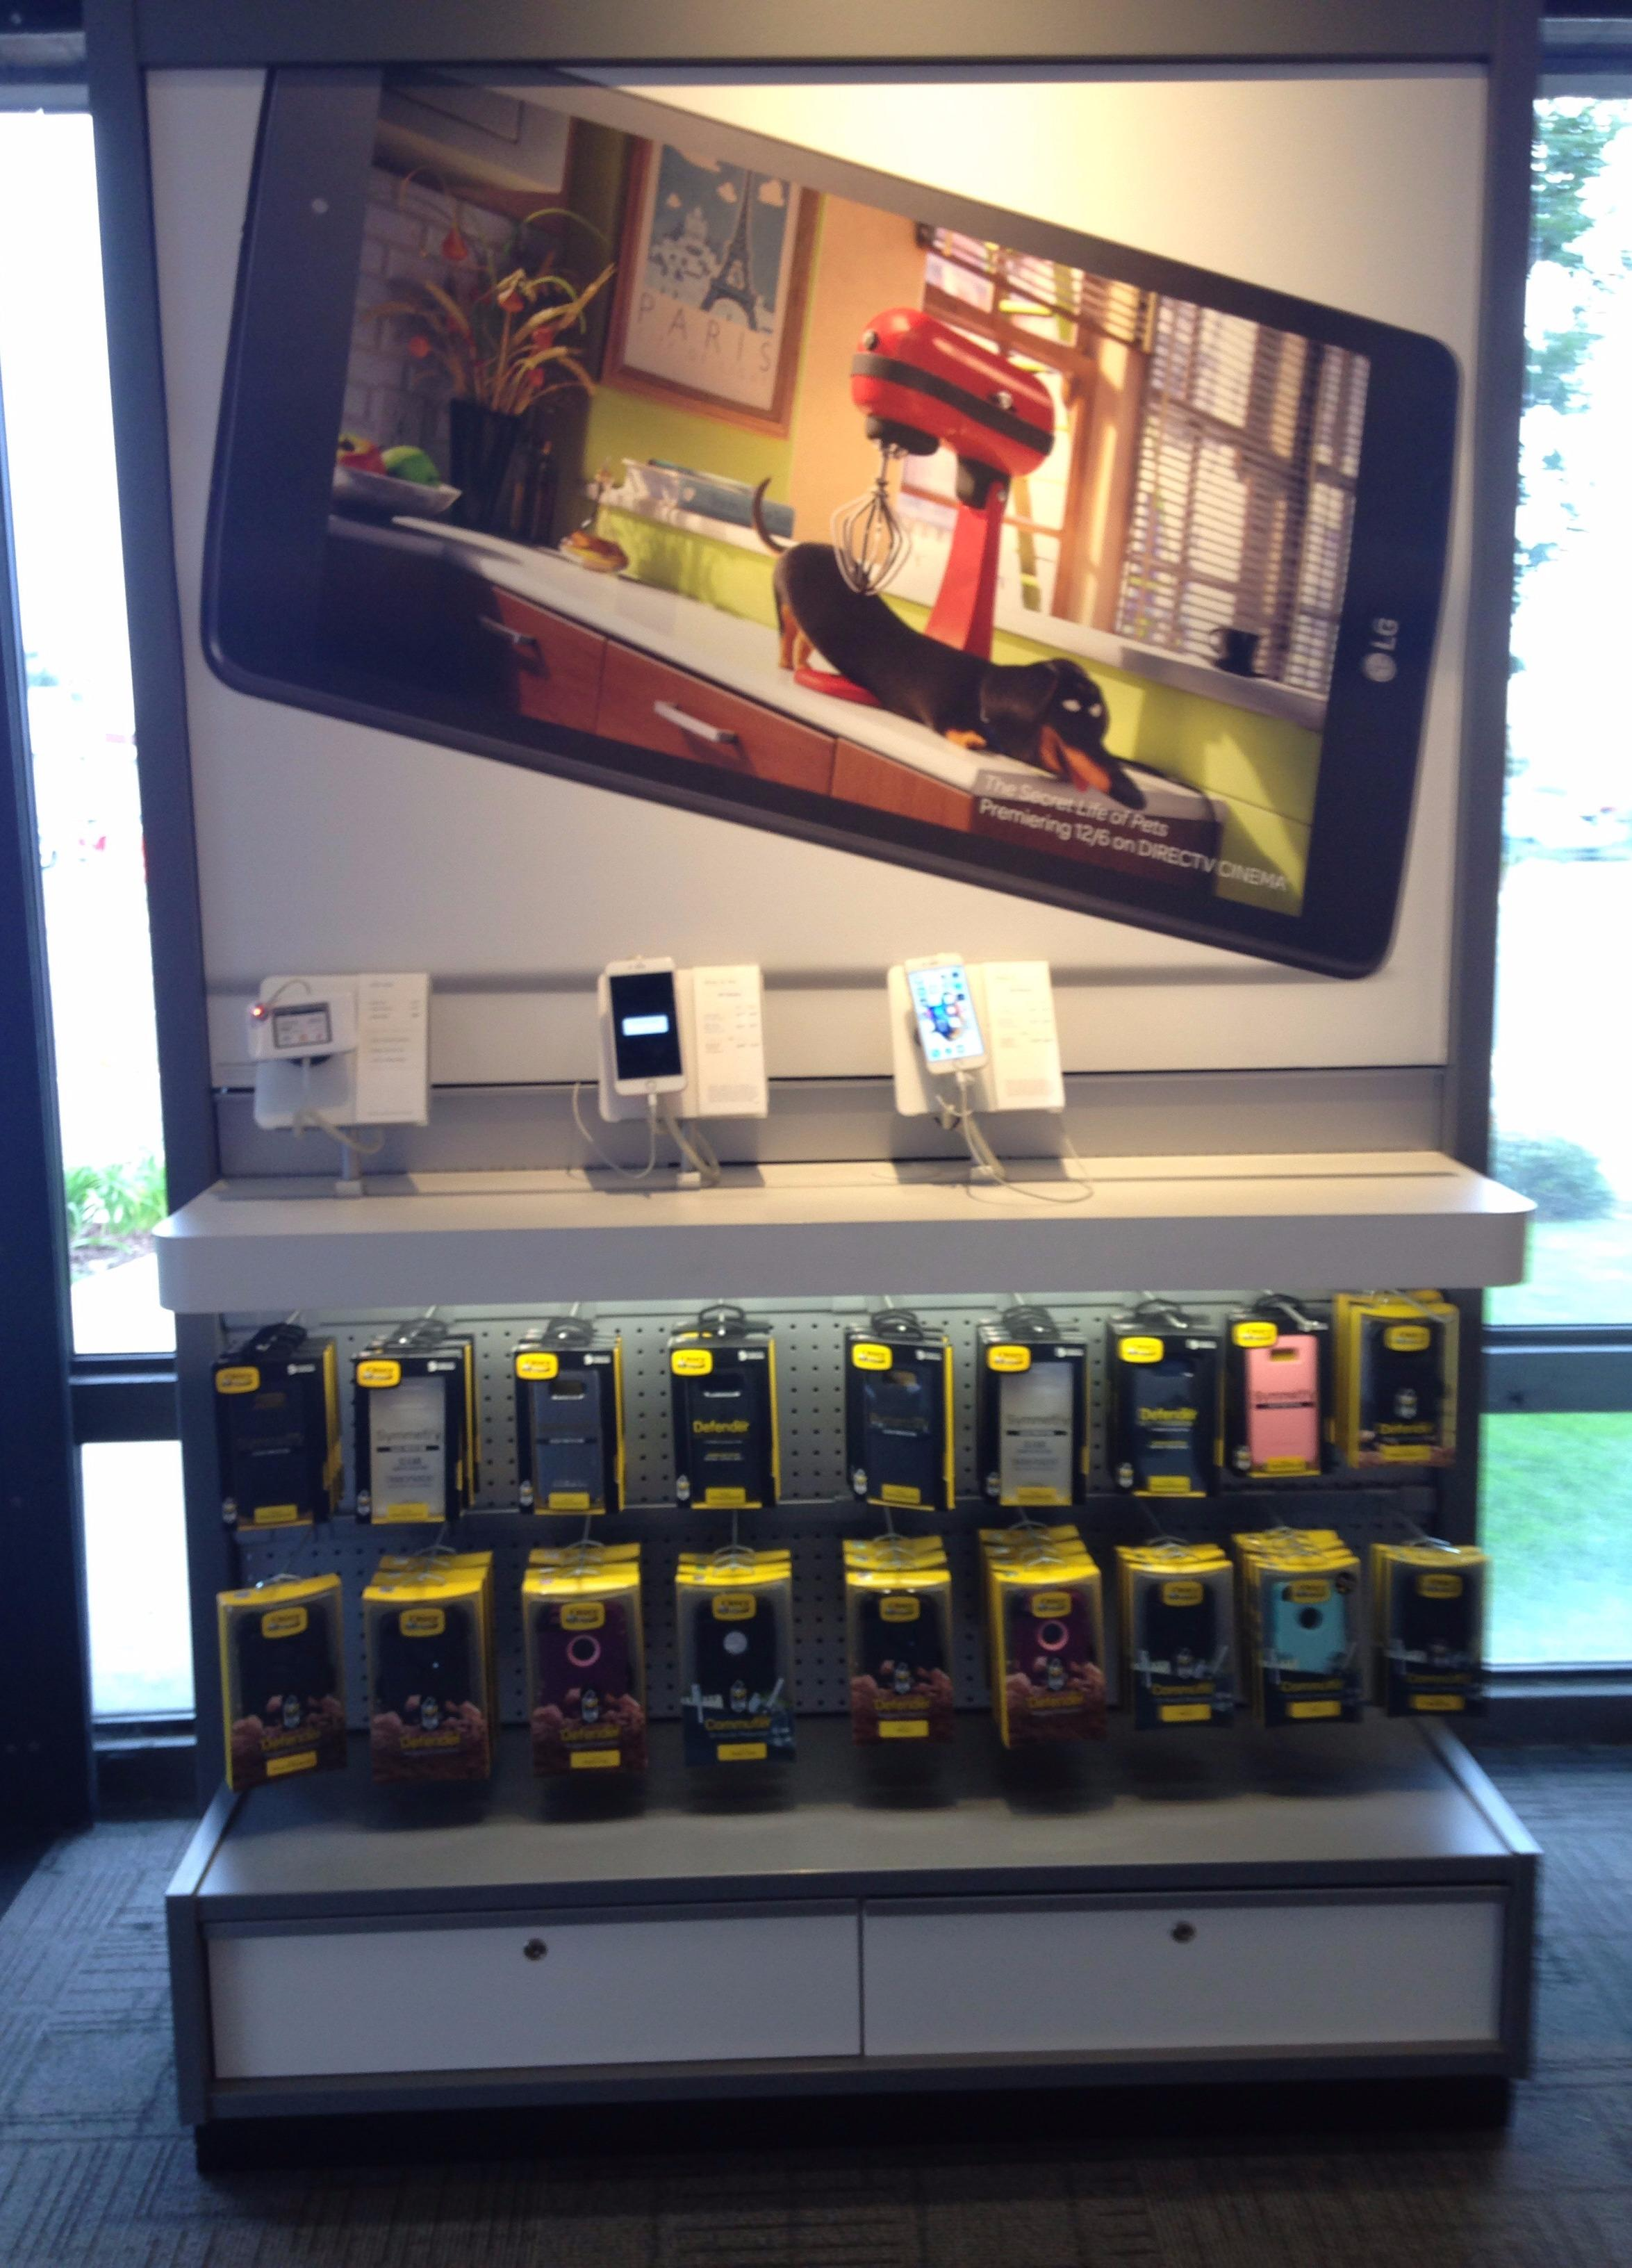 AT&T Store image 9